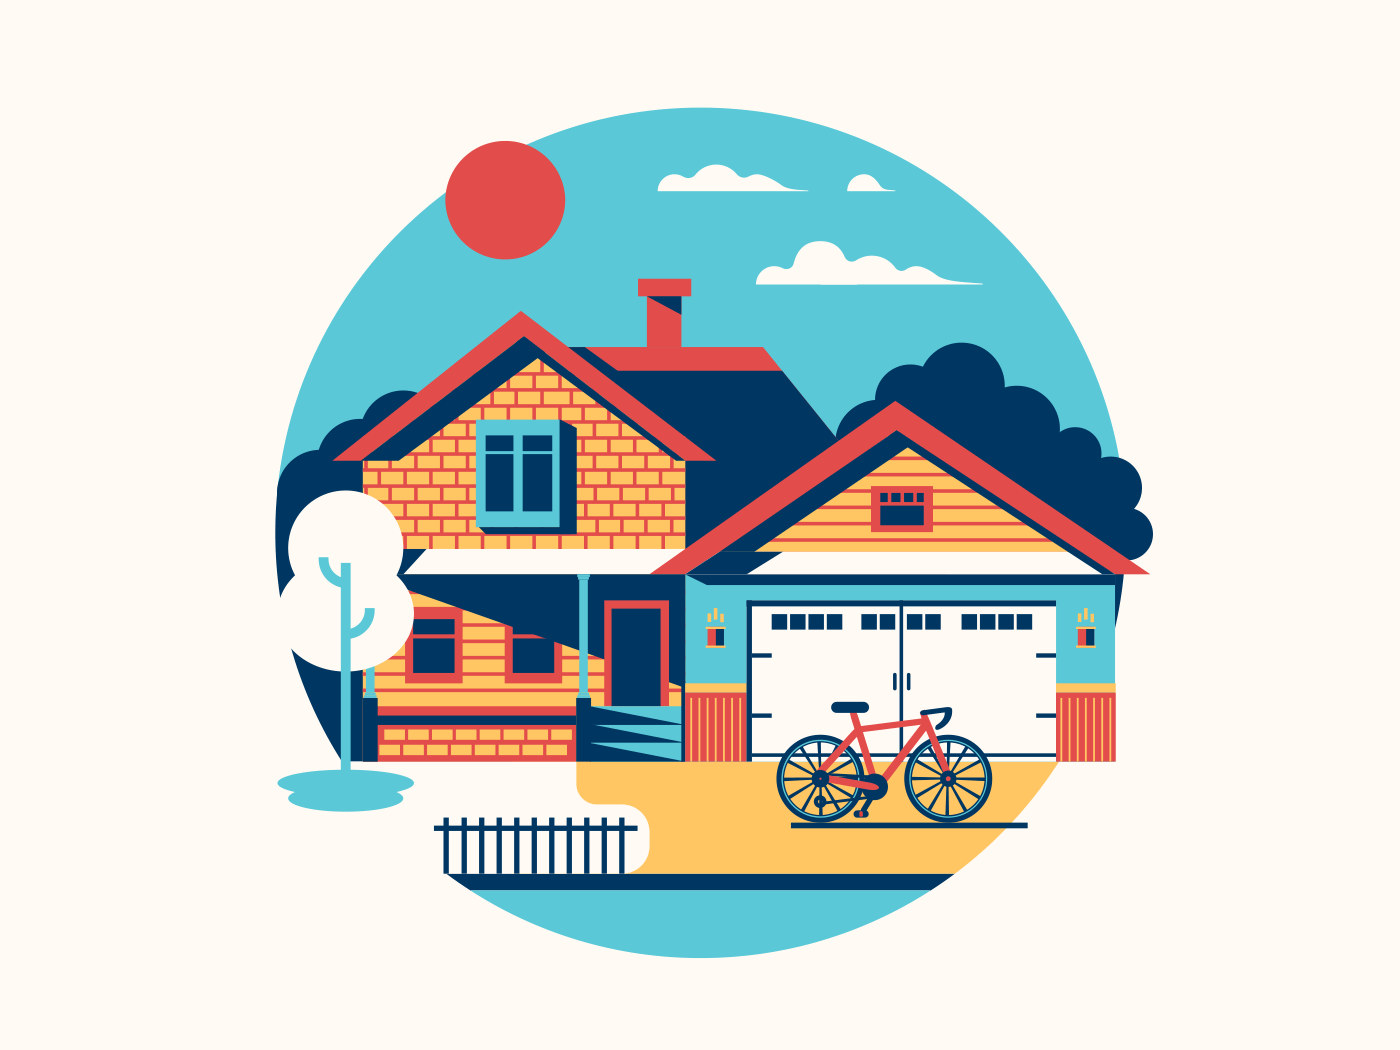 House icon illustration